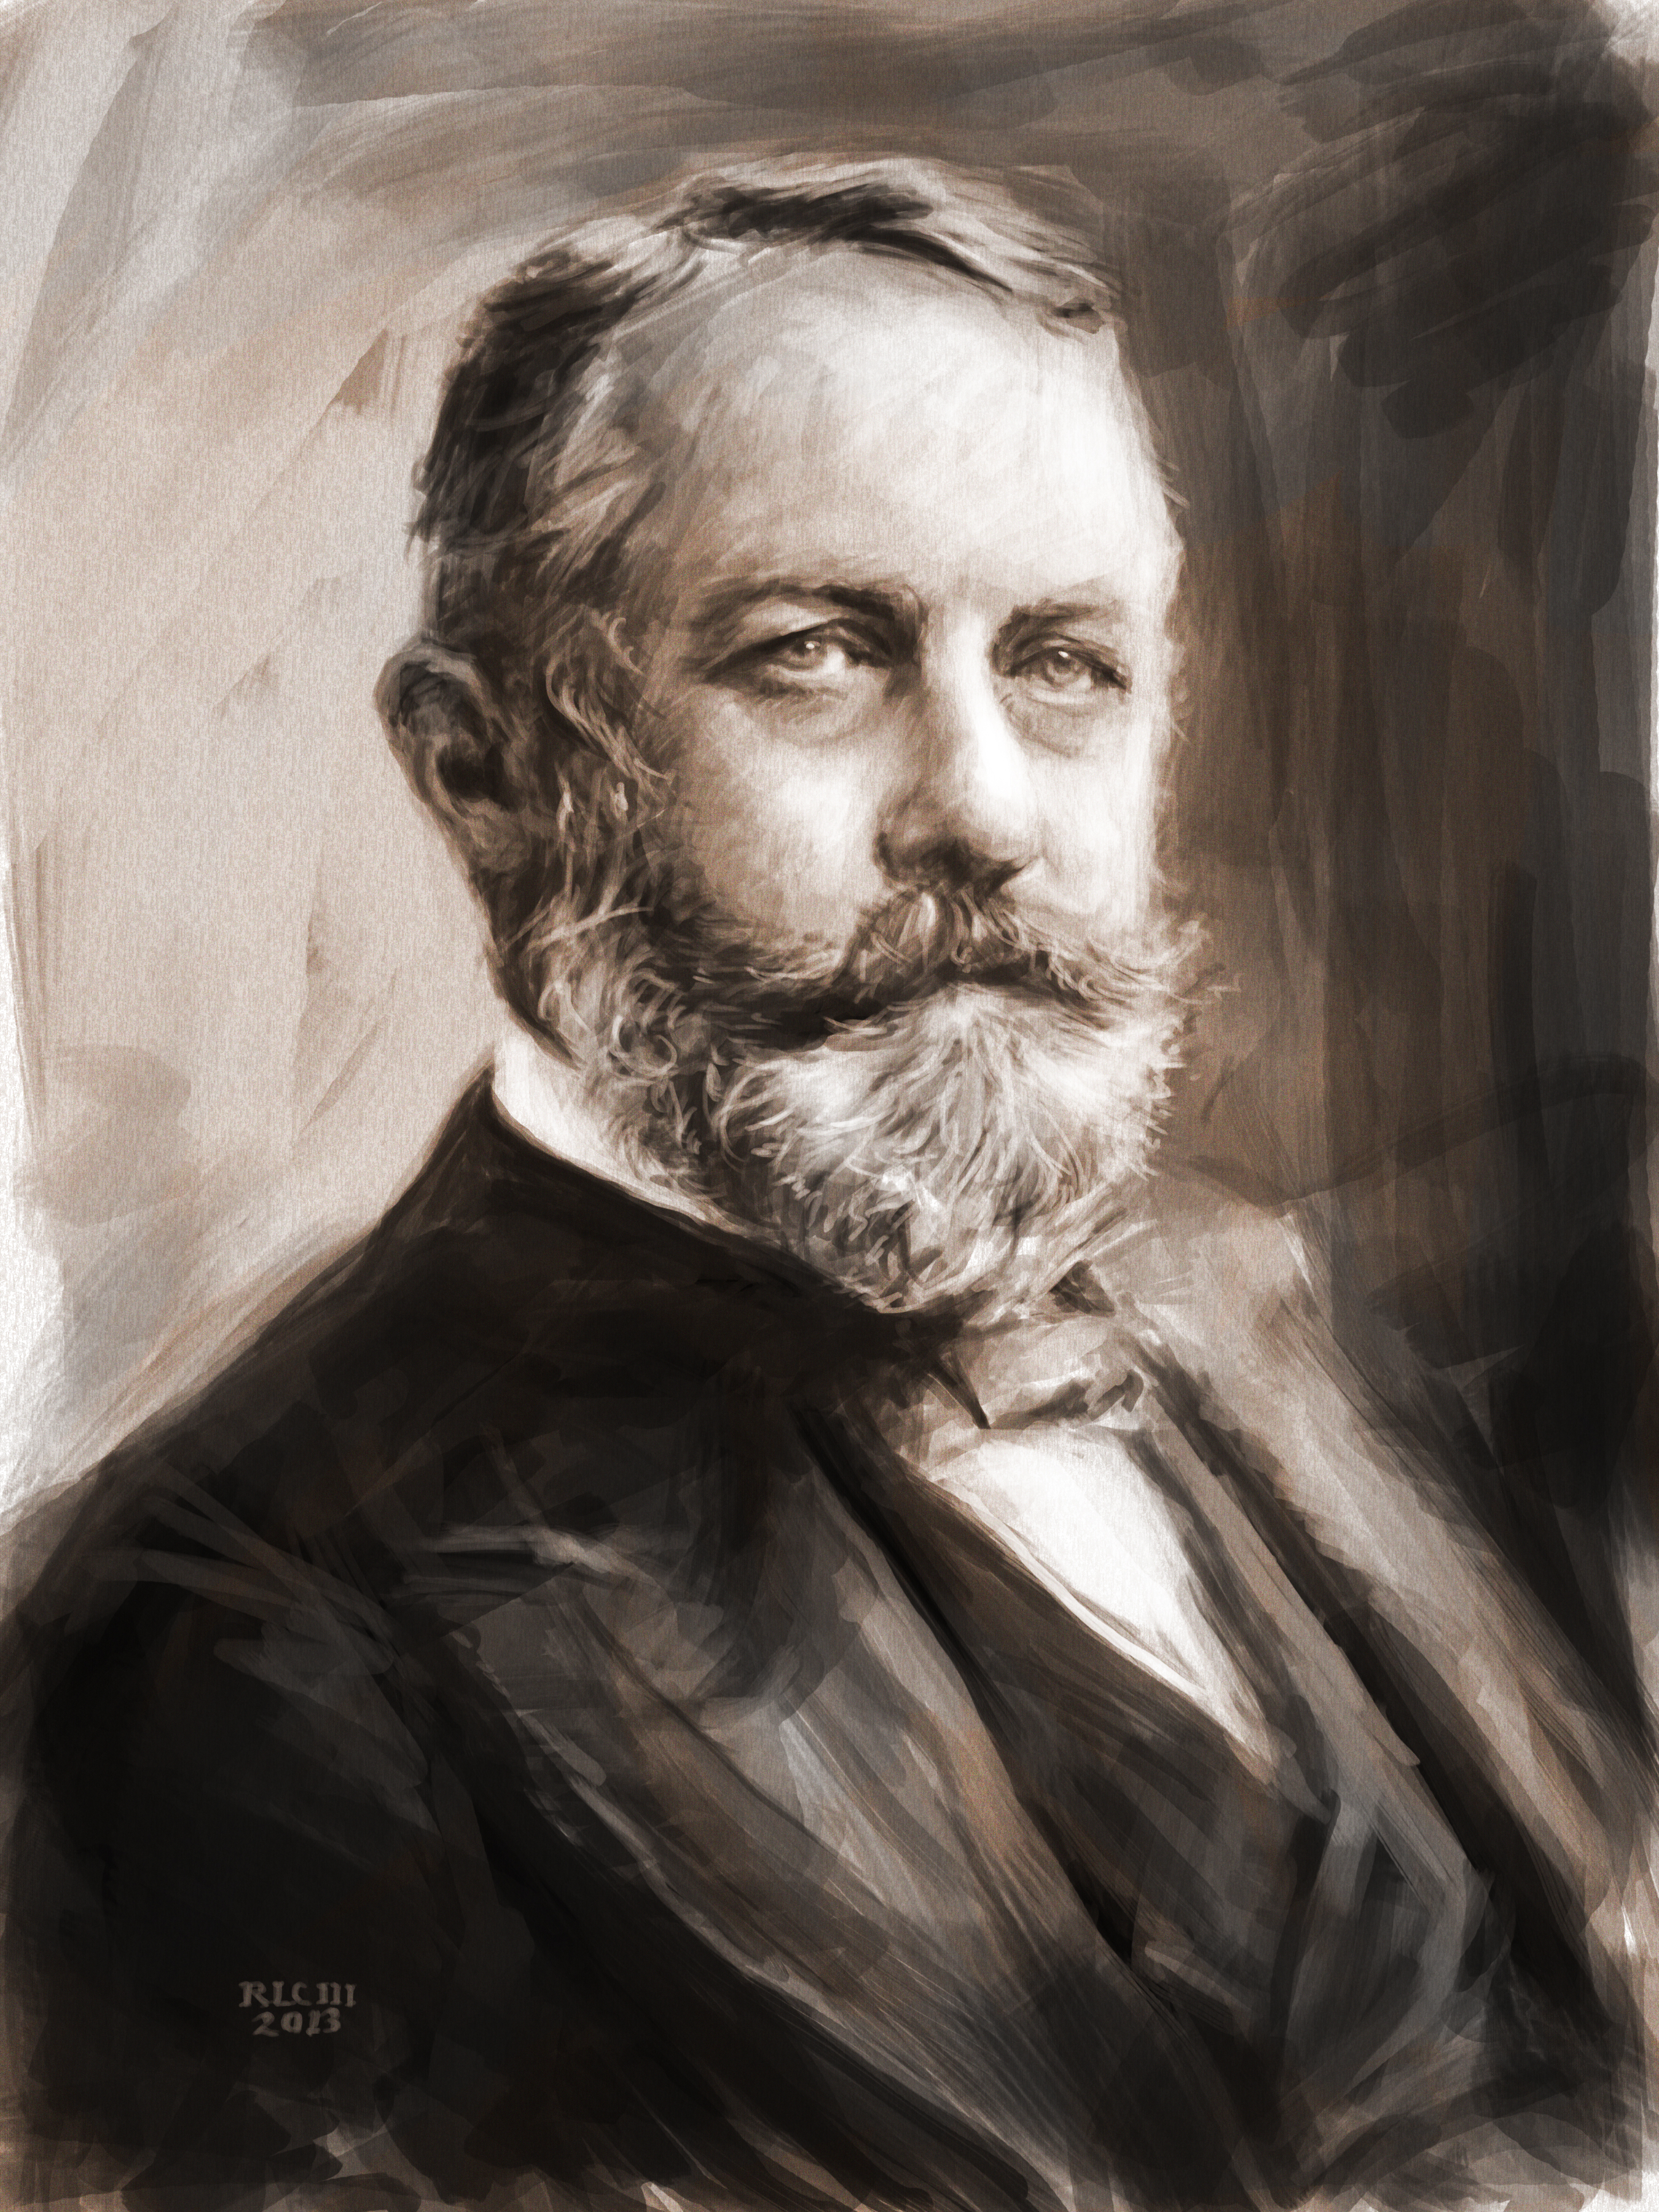 Henry Clay Frick 19th century tycoon digital portrait by Ricky Colson